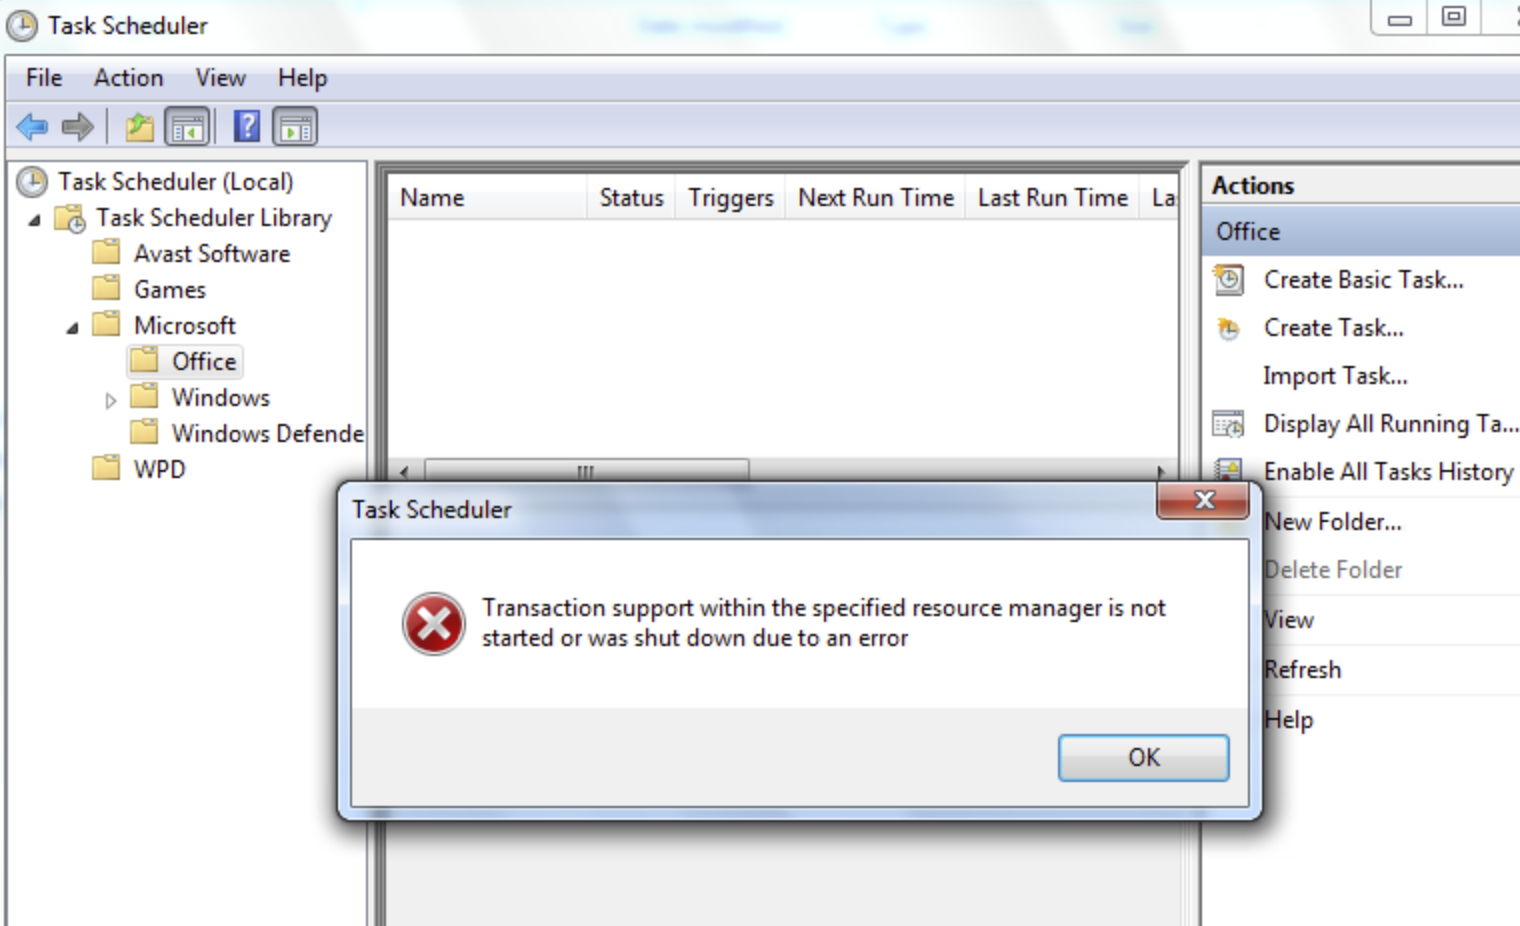 """Solved: How do I fix Task Scheduler Error """"Transaction support within the specified resource manager is not started or was shut down due to an error""""?"""